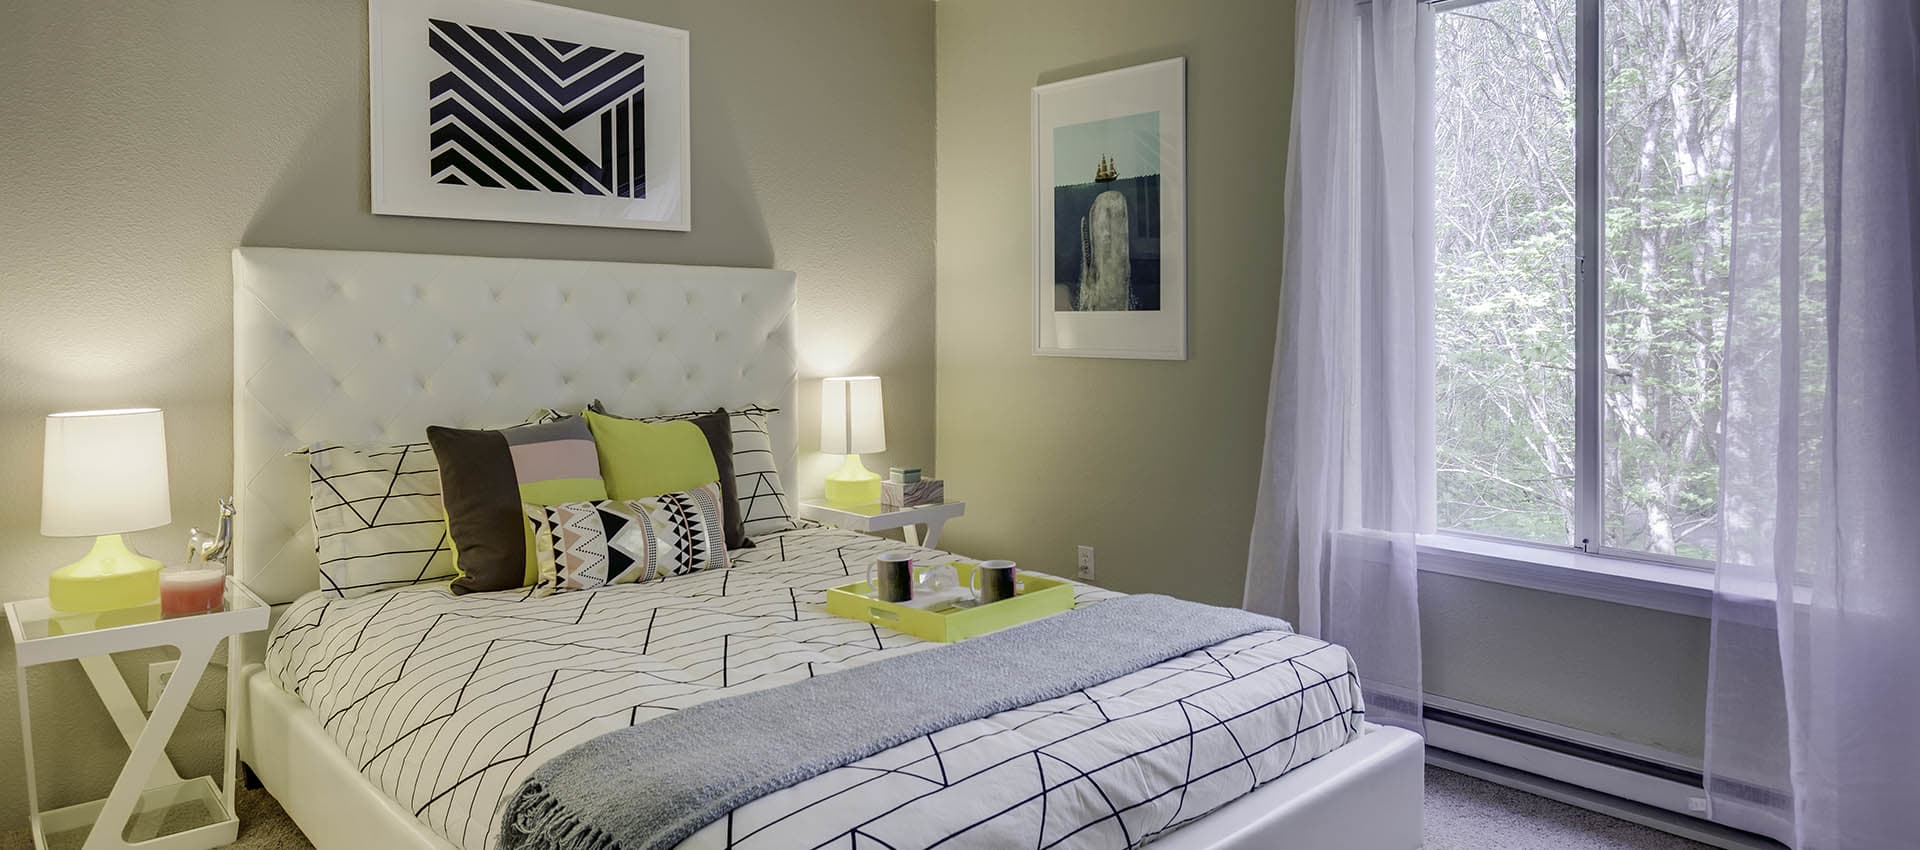 Bedroom With Modern Decorations at Waterhouse Place in Beaverton, OR